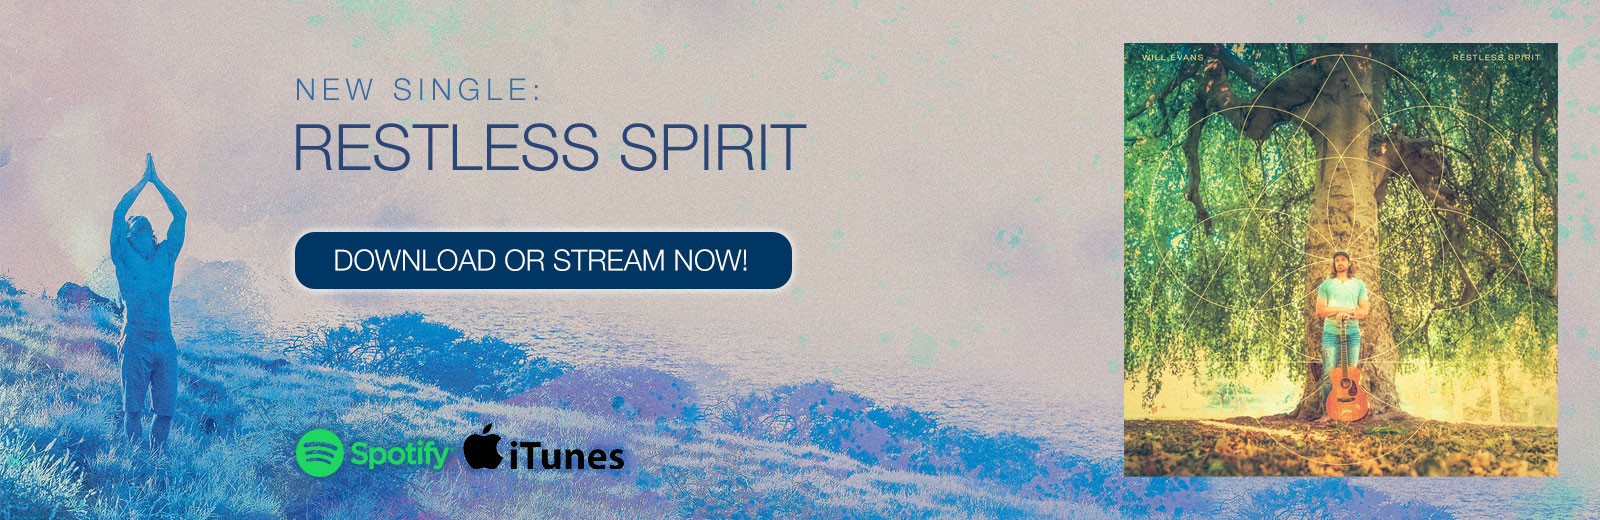 Restless Spirit Homepage slide